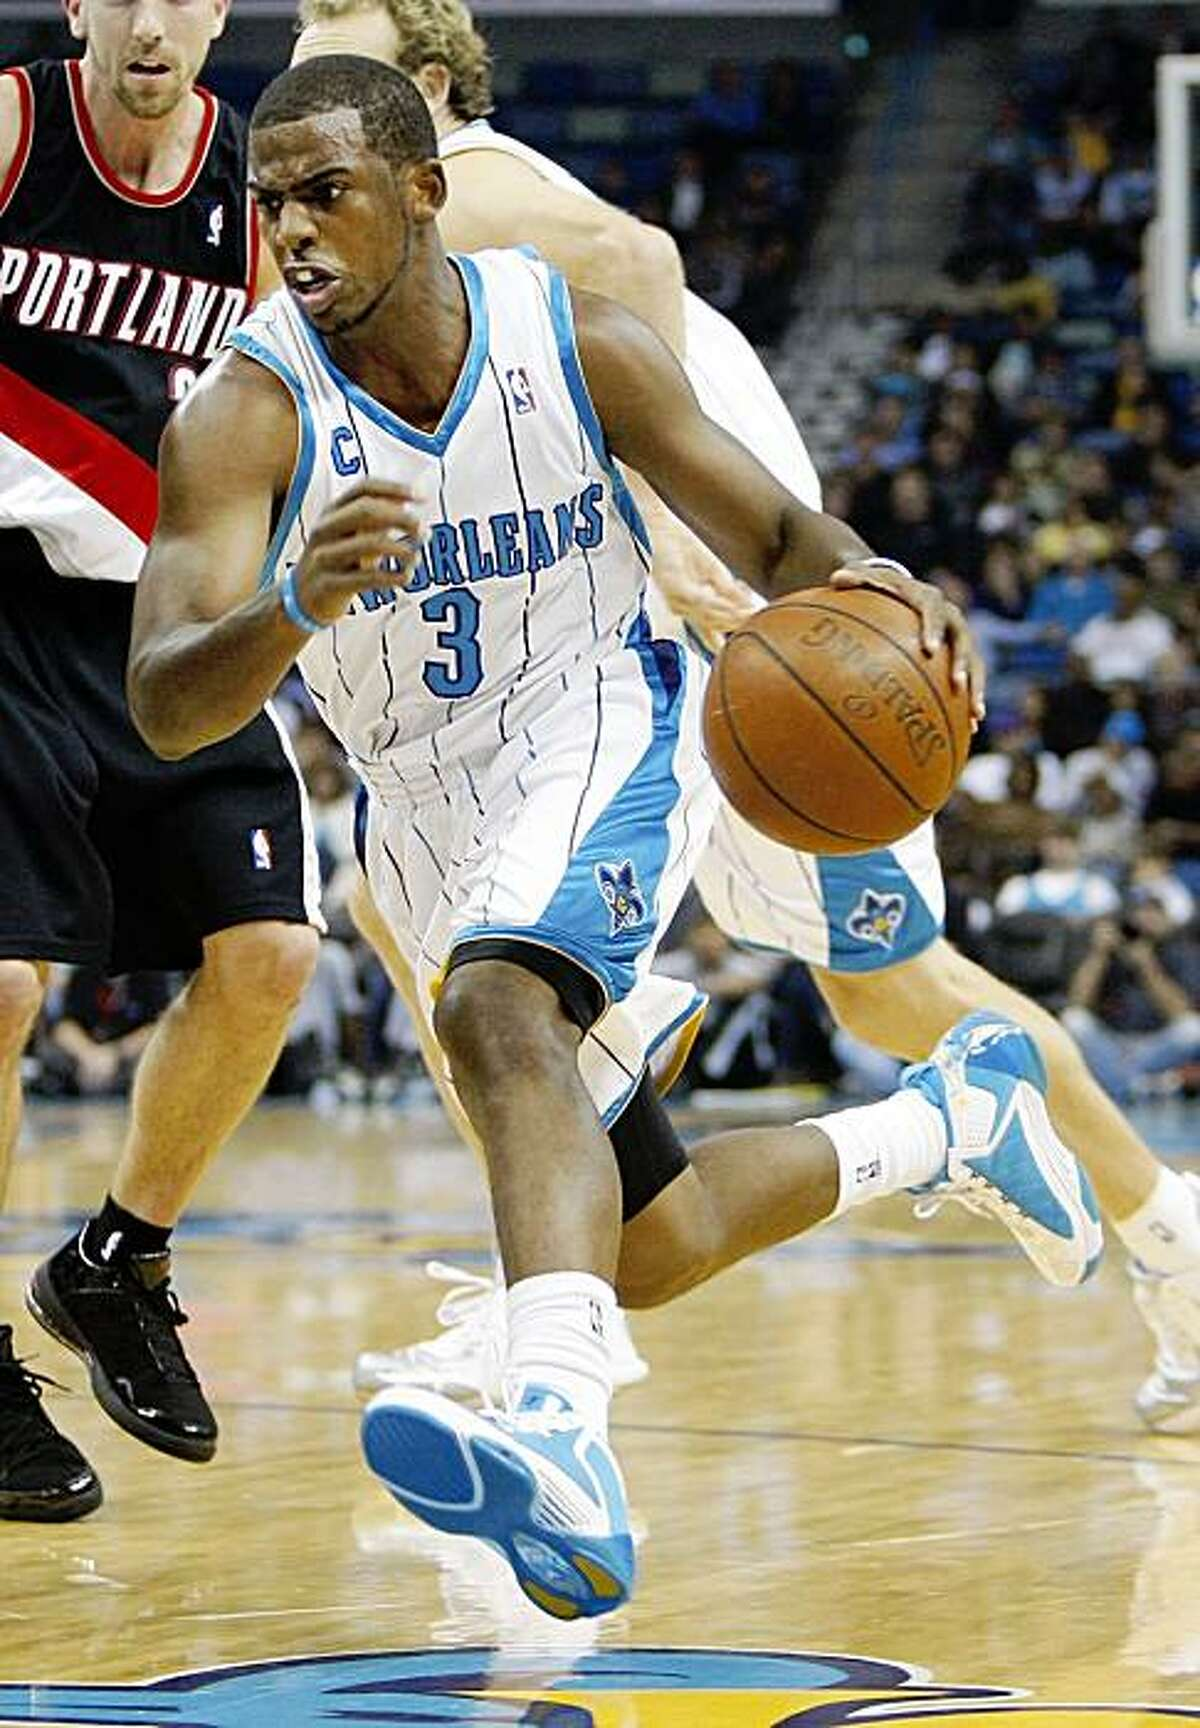 New Orleans Hornets guard Chris Paul (3) drives to the basket in the first half against the Portland Trail Blazers in an NBA basketball game in New Orleans, Friday, Nov. 13, 2009. (AP Photo/Bill Haber)